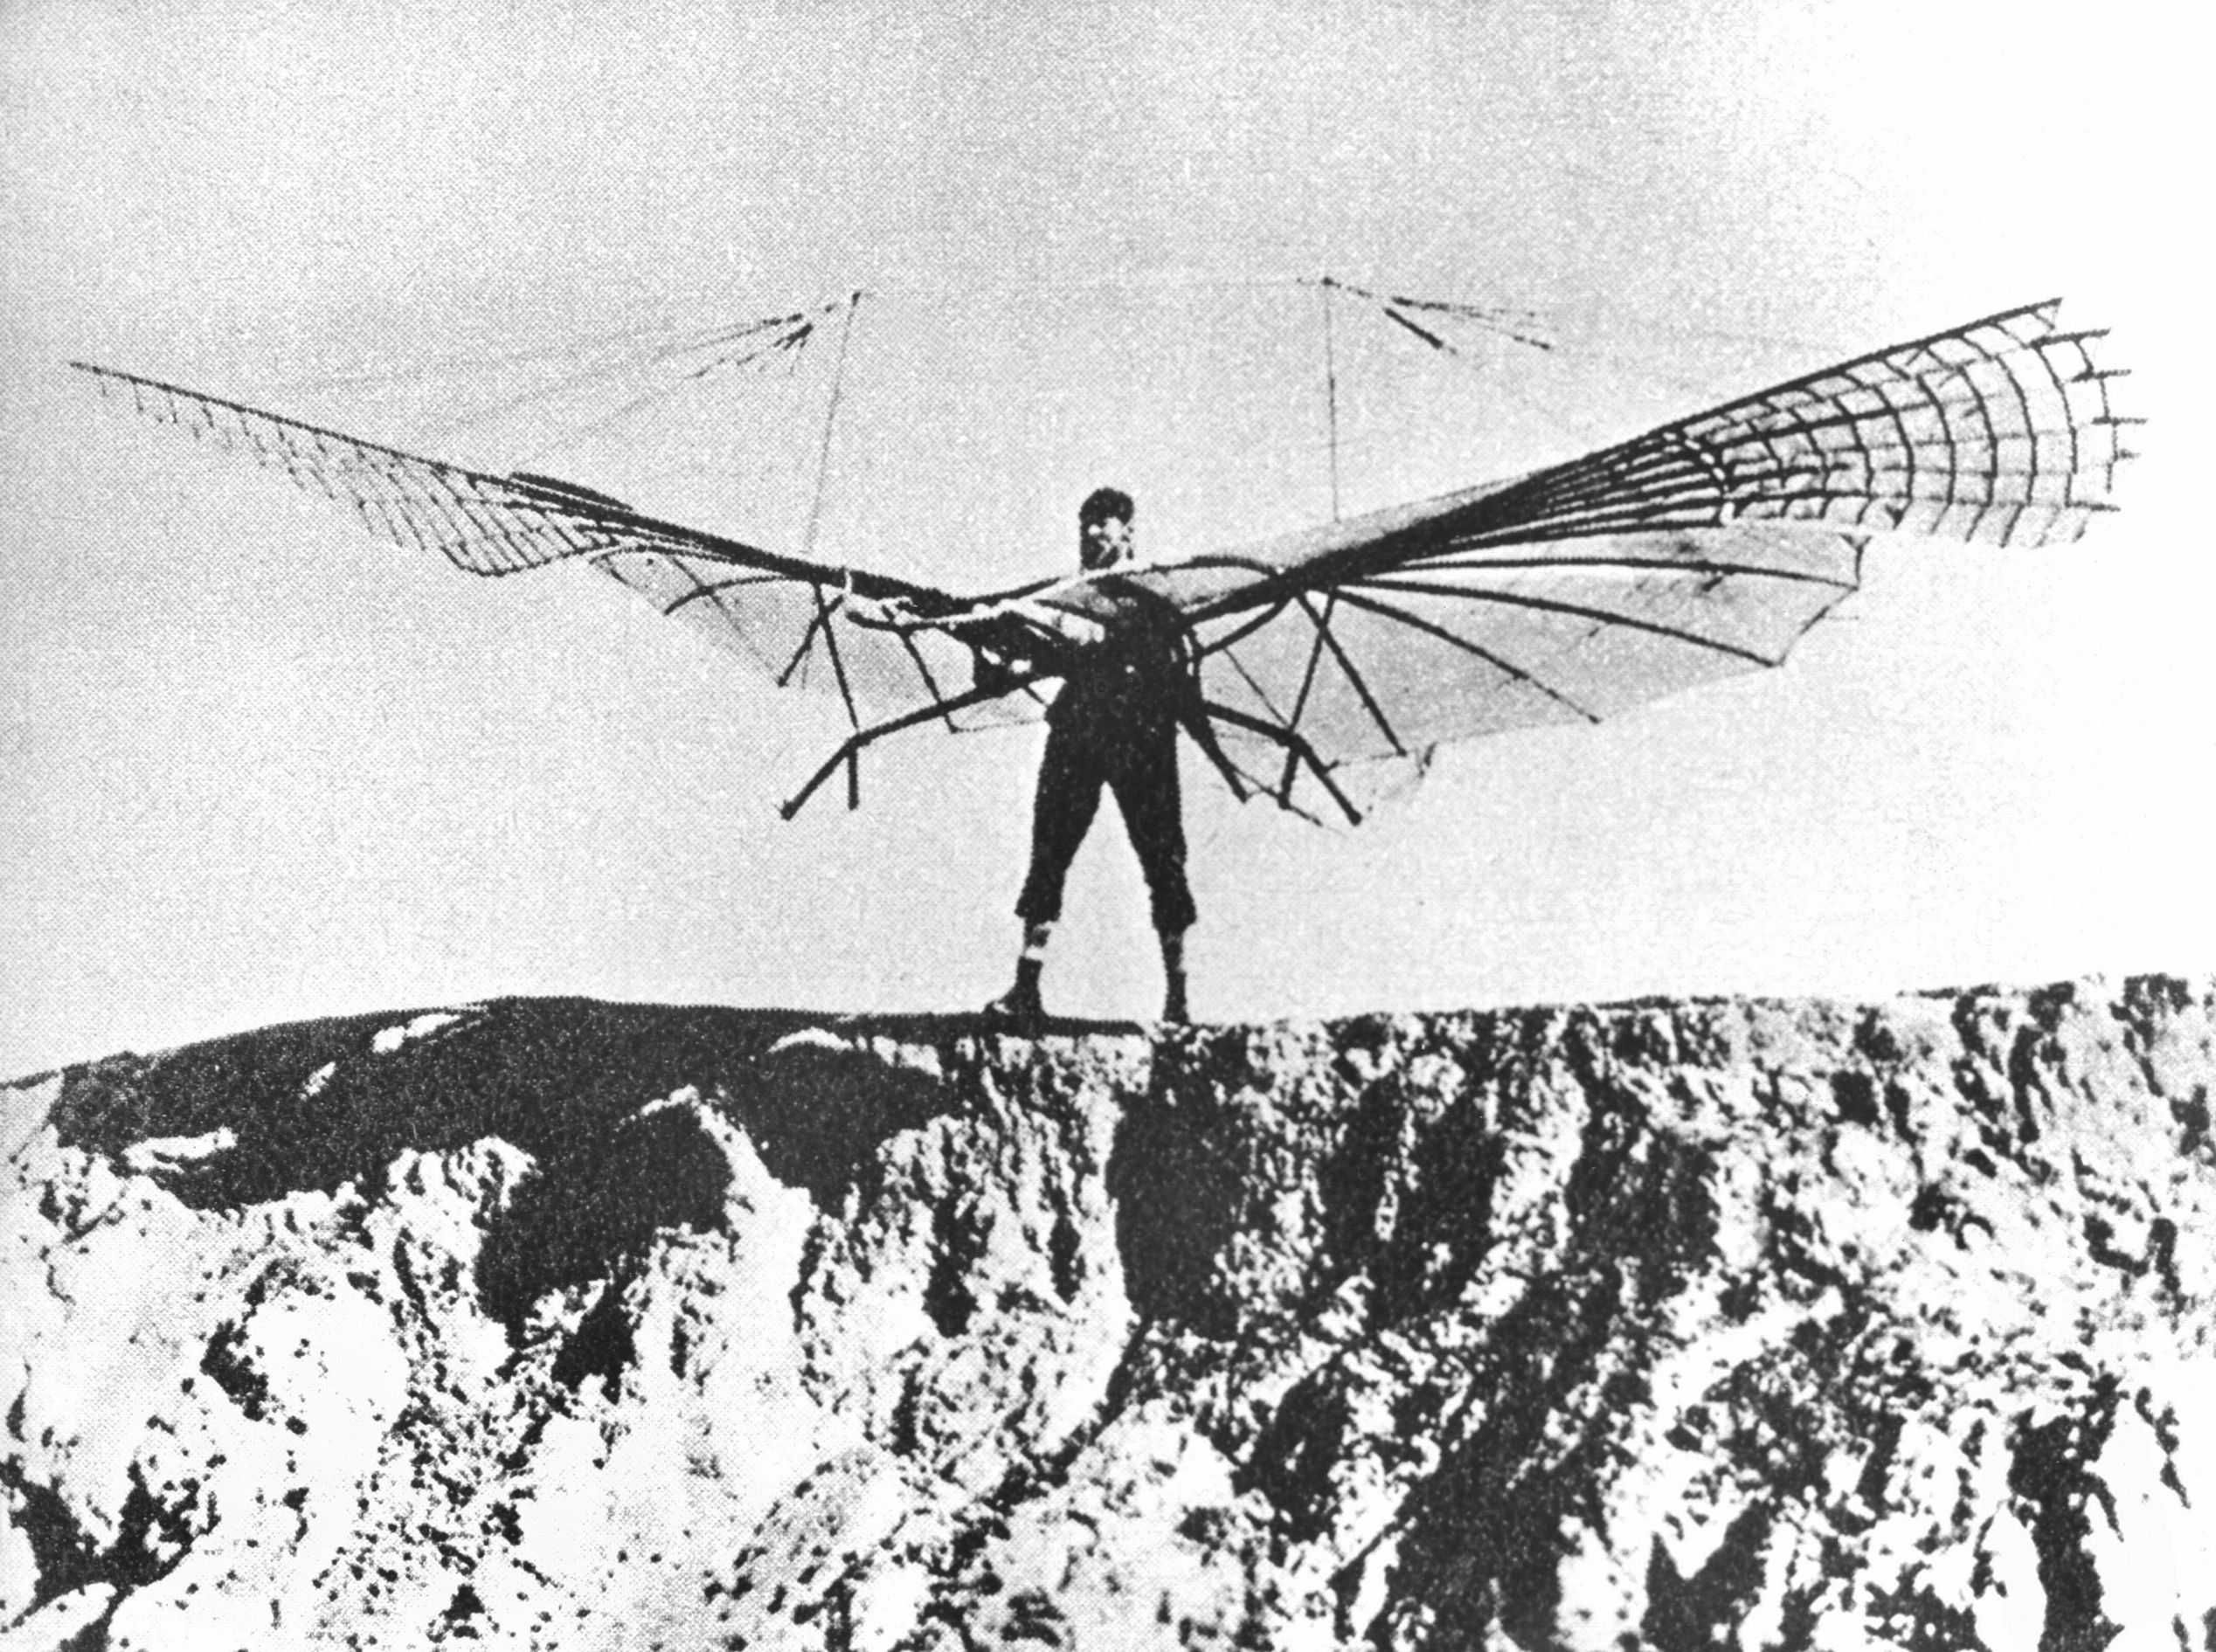 Otto lilienthal first gliders impossible